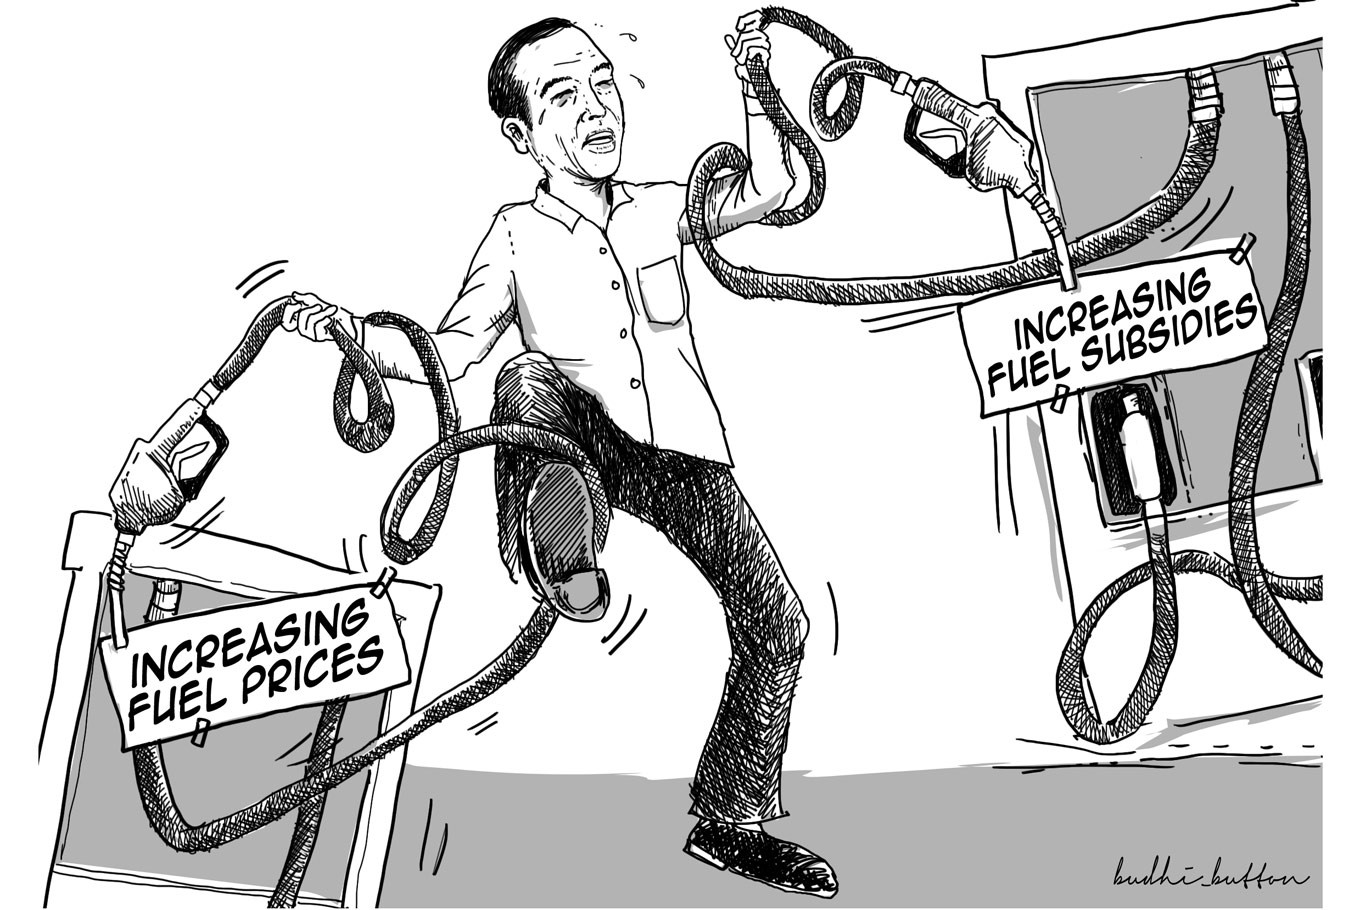 EDITORIAL: Government market intervention - Editorial - The Jakarta Post